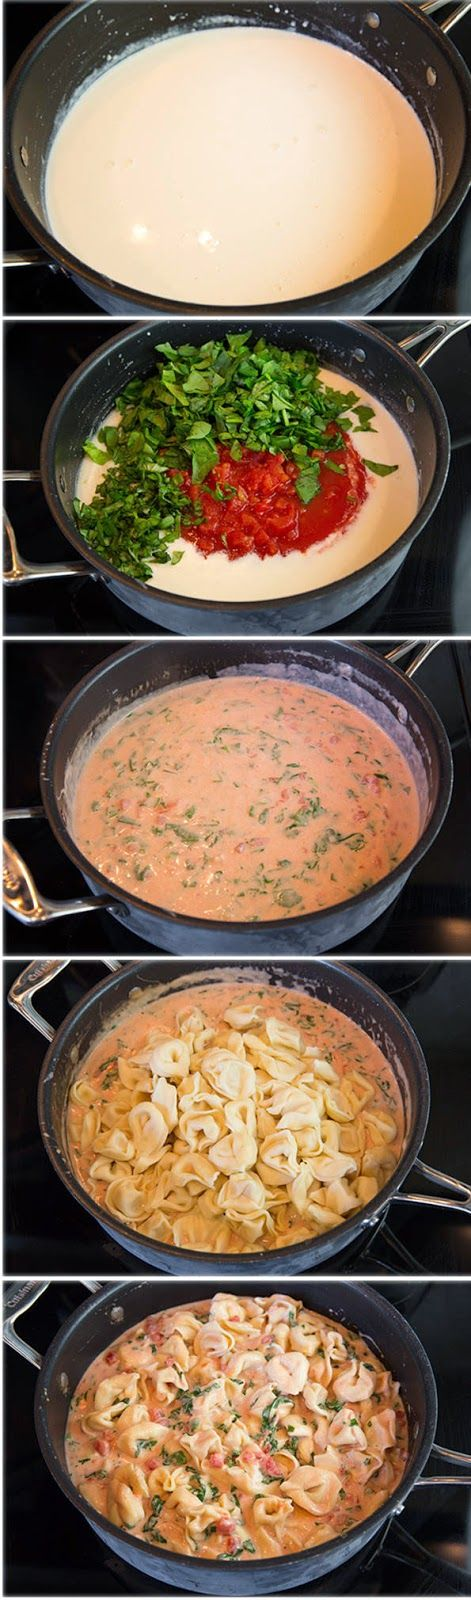 Creamy Spinach Tomato Tortellini - cookclouds. Minus the spinach and I bet this would be tasty.